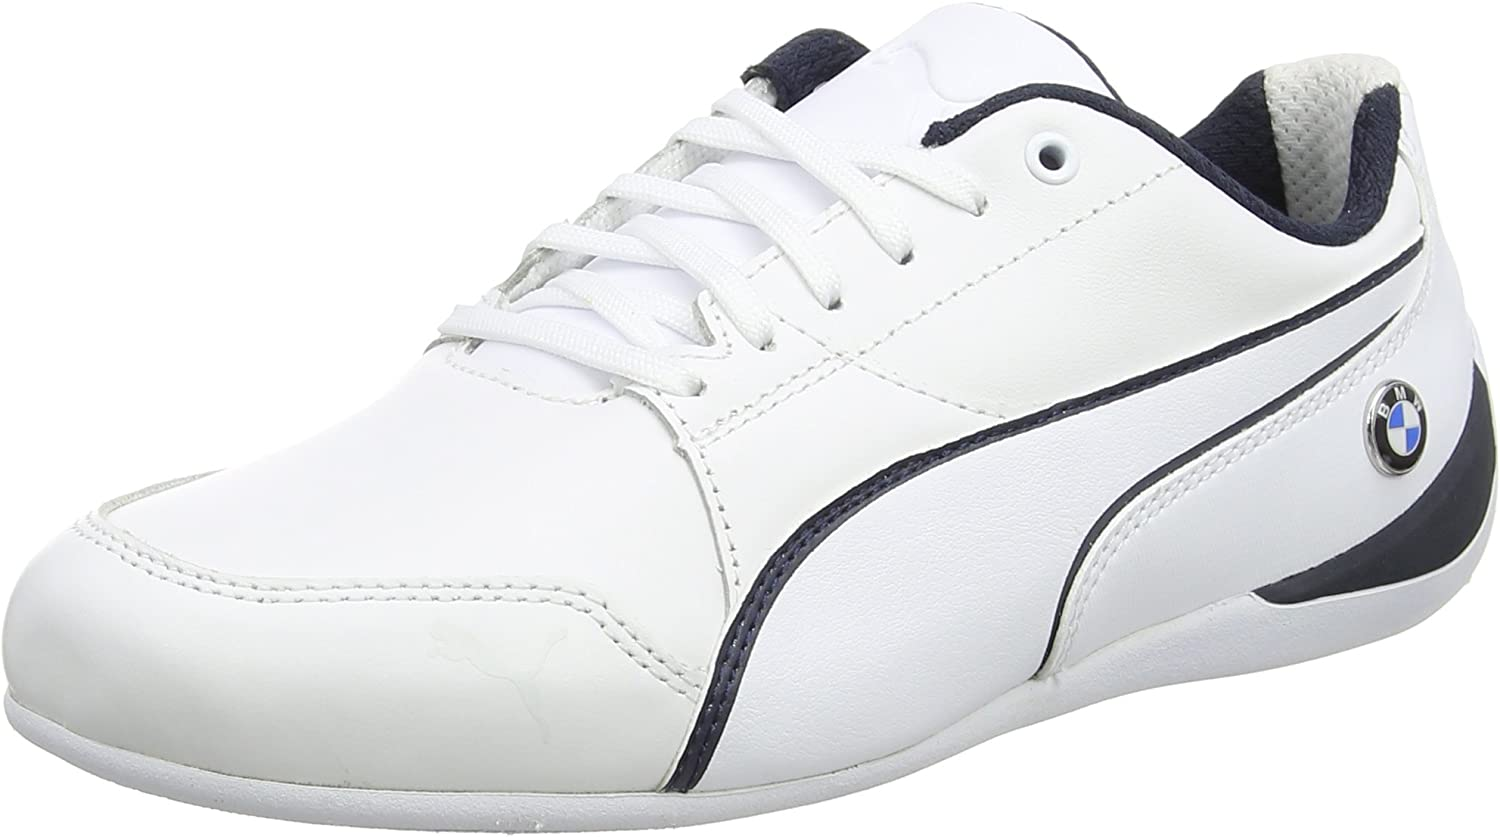 PUMA Unisex Adults' BMW Ms Drift Cat 7 Low-Top Sneakers